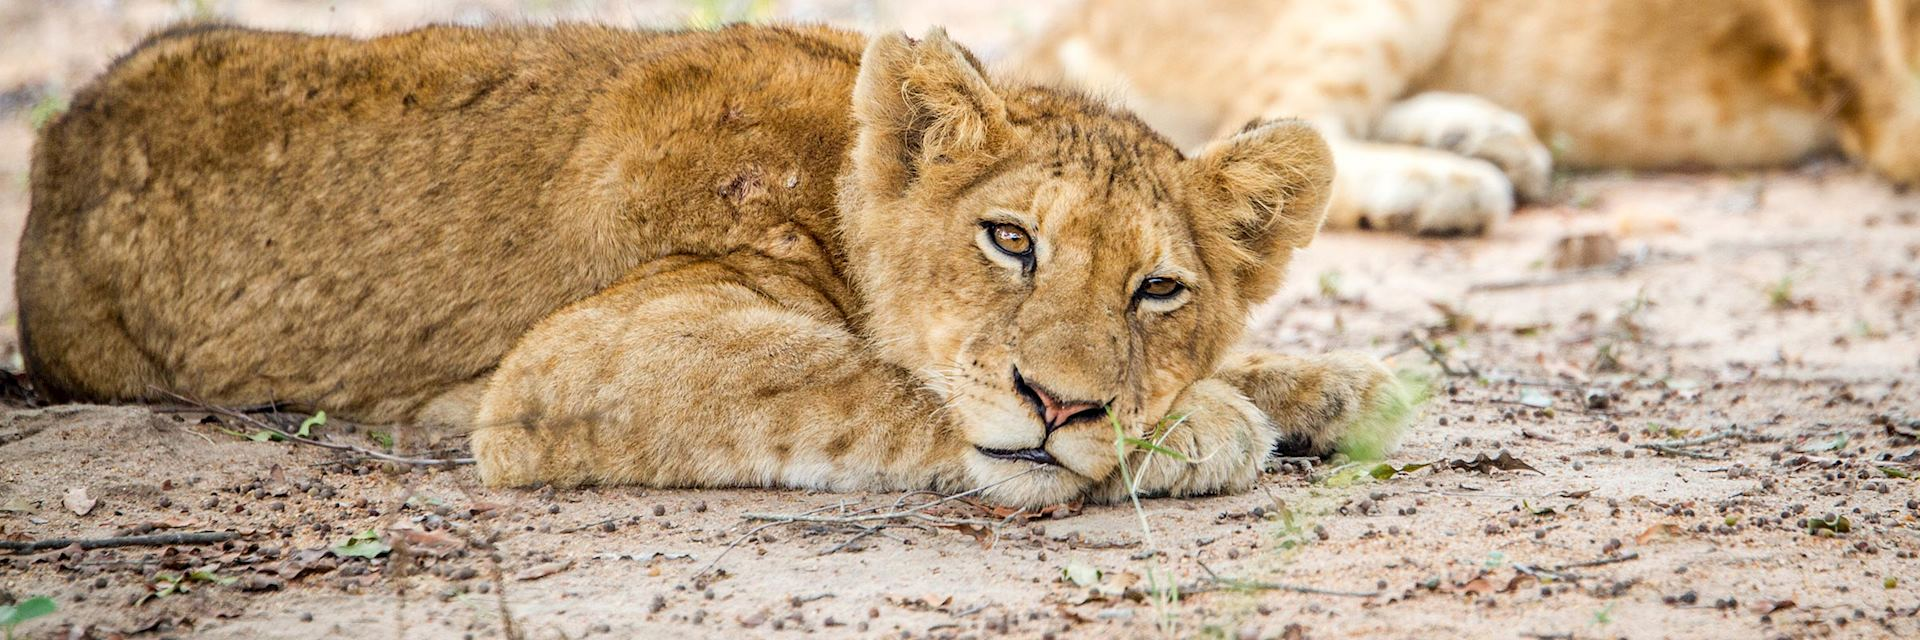 Lion cub in Kapama Private Game Reserve